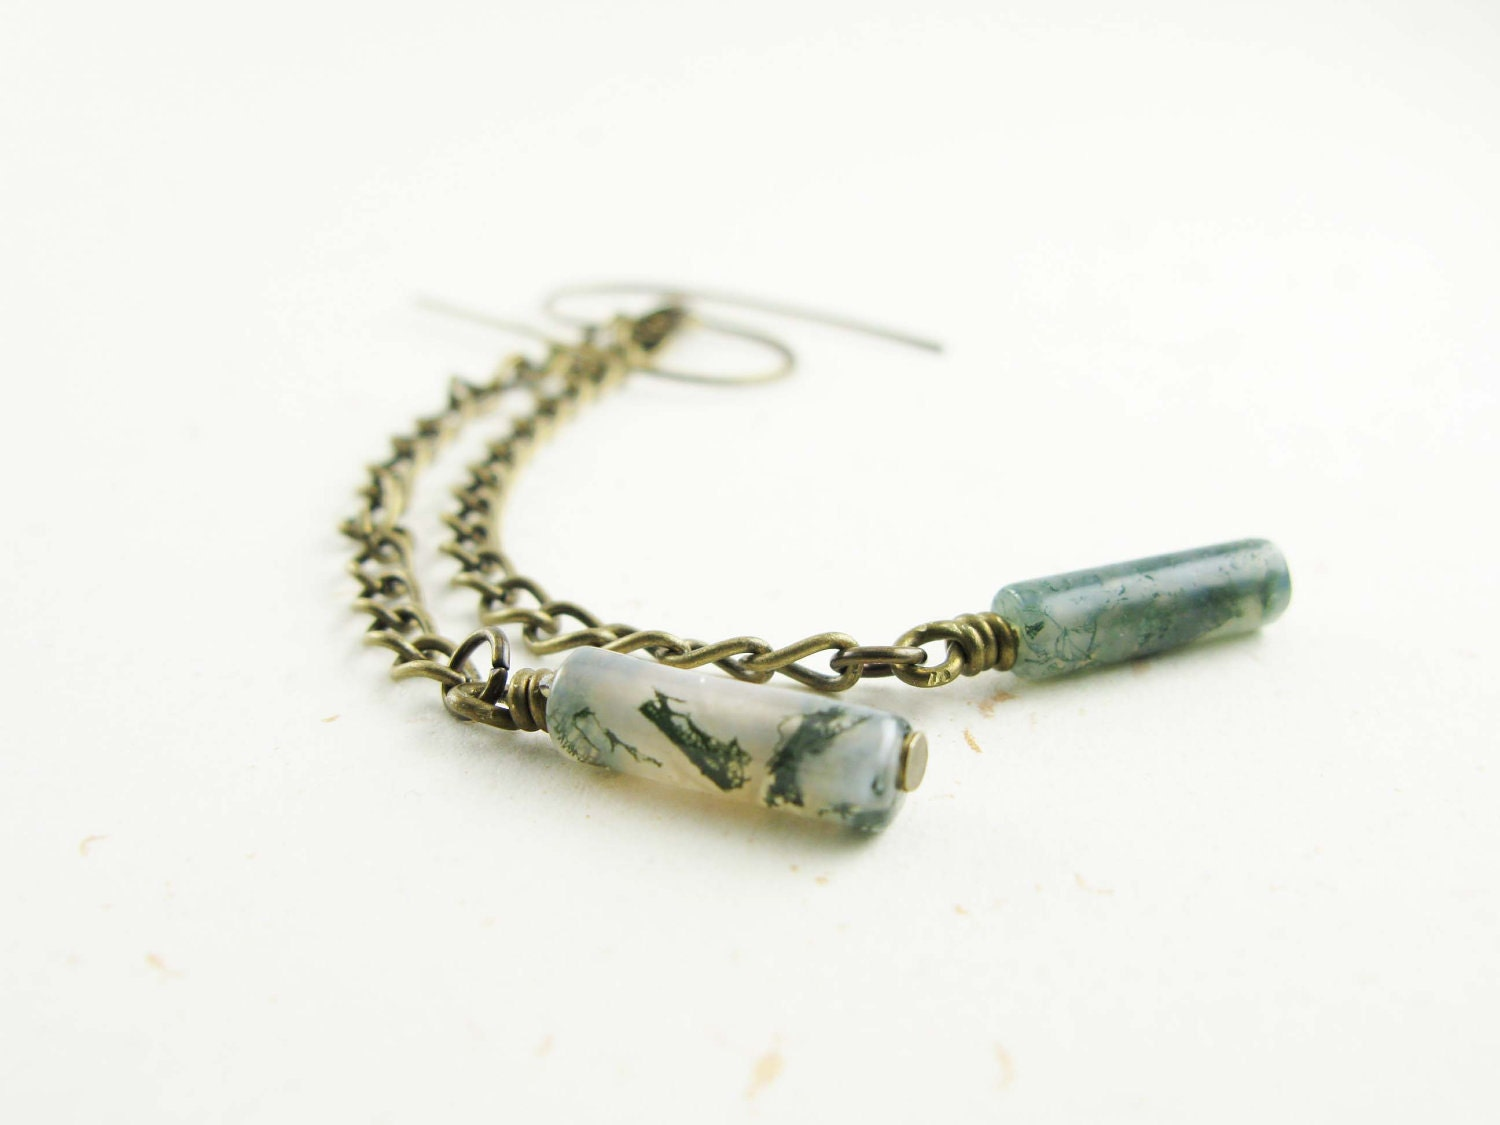 Brass chain & moss agate earrings - moss green, antiqued brass, free shipping - mejjewelry